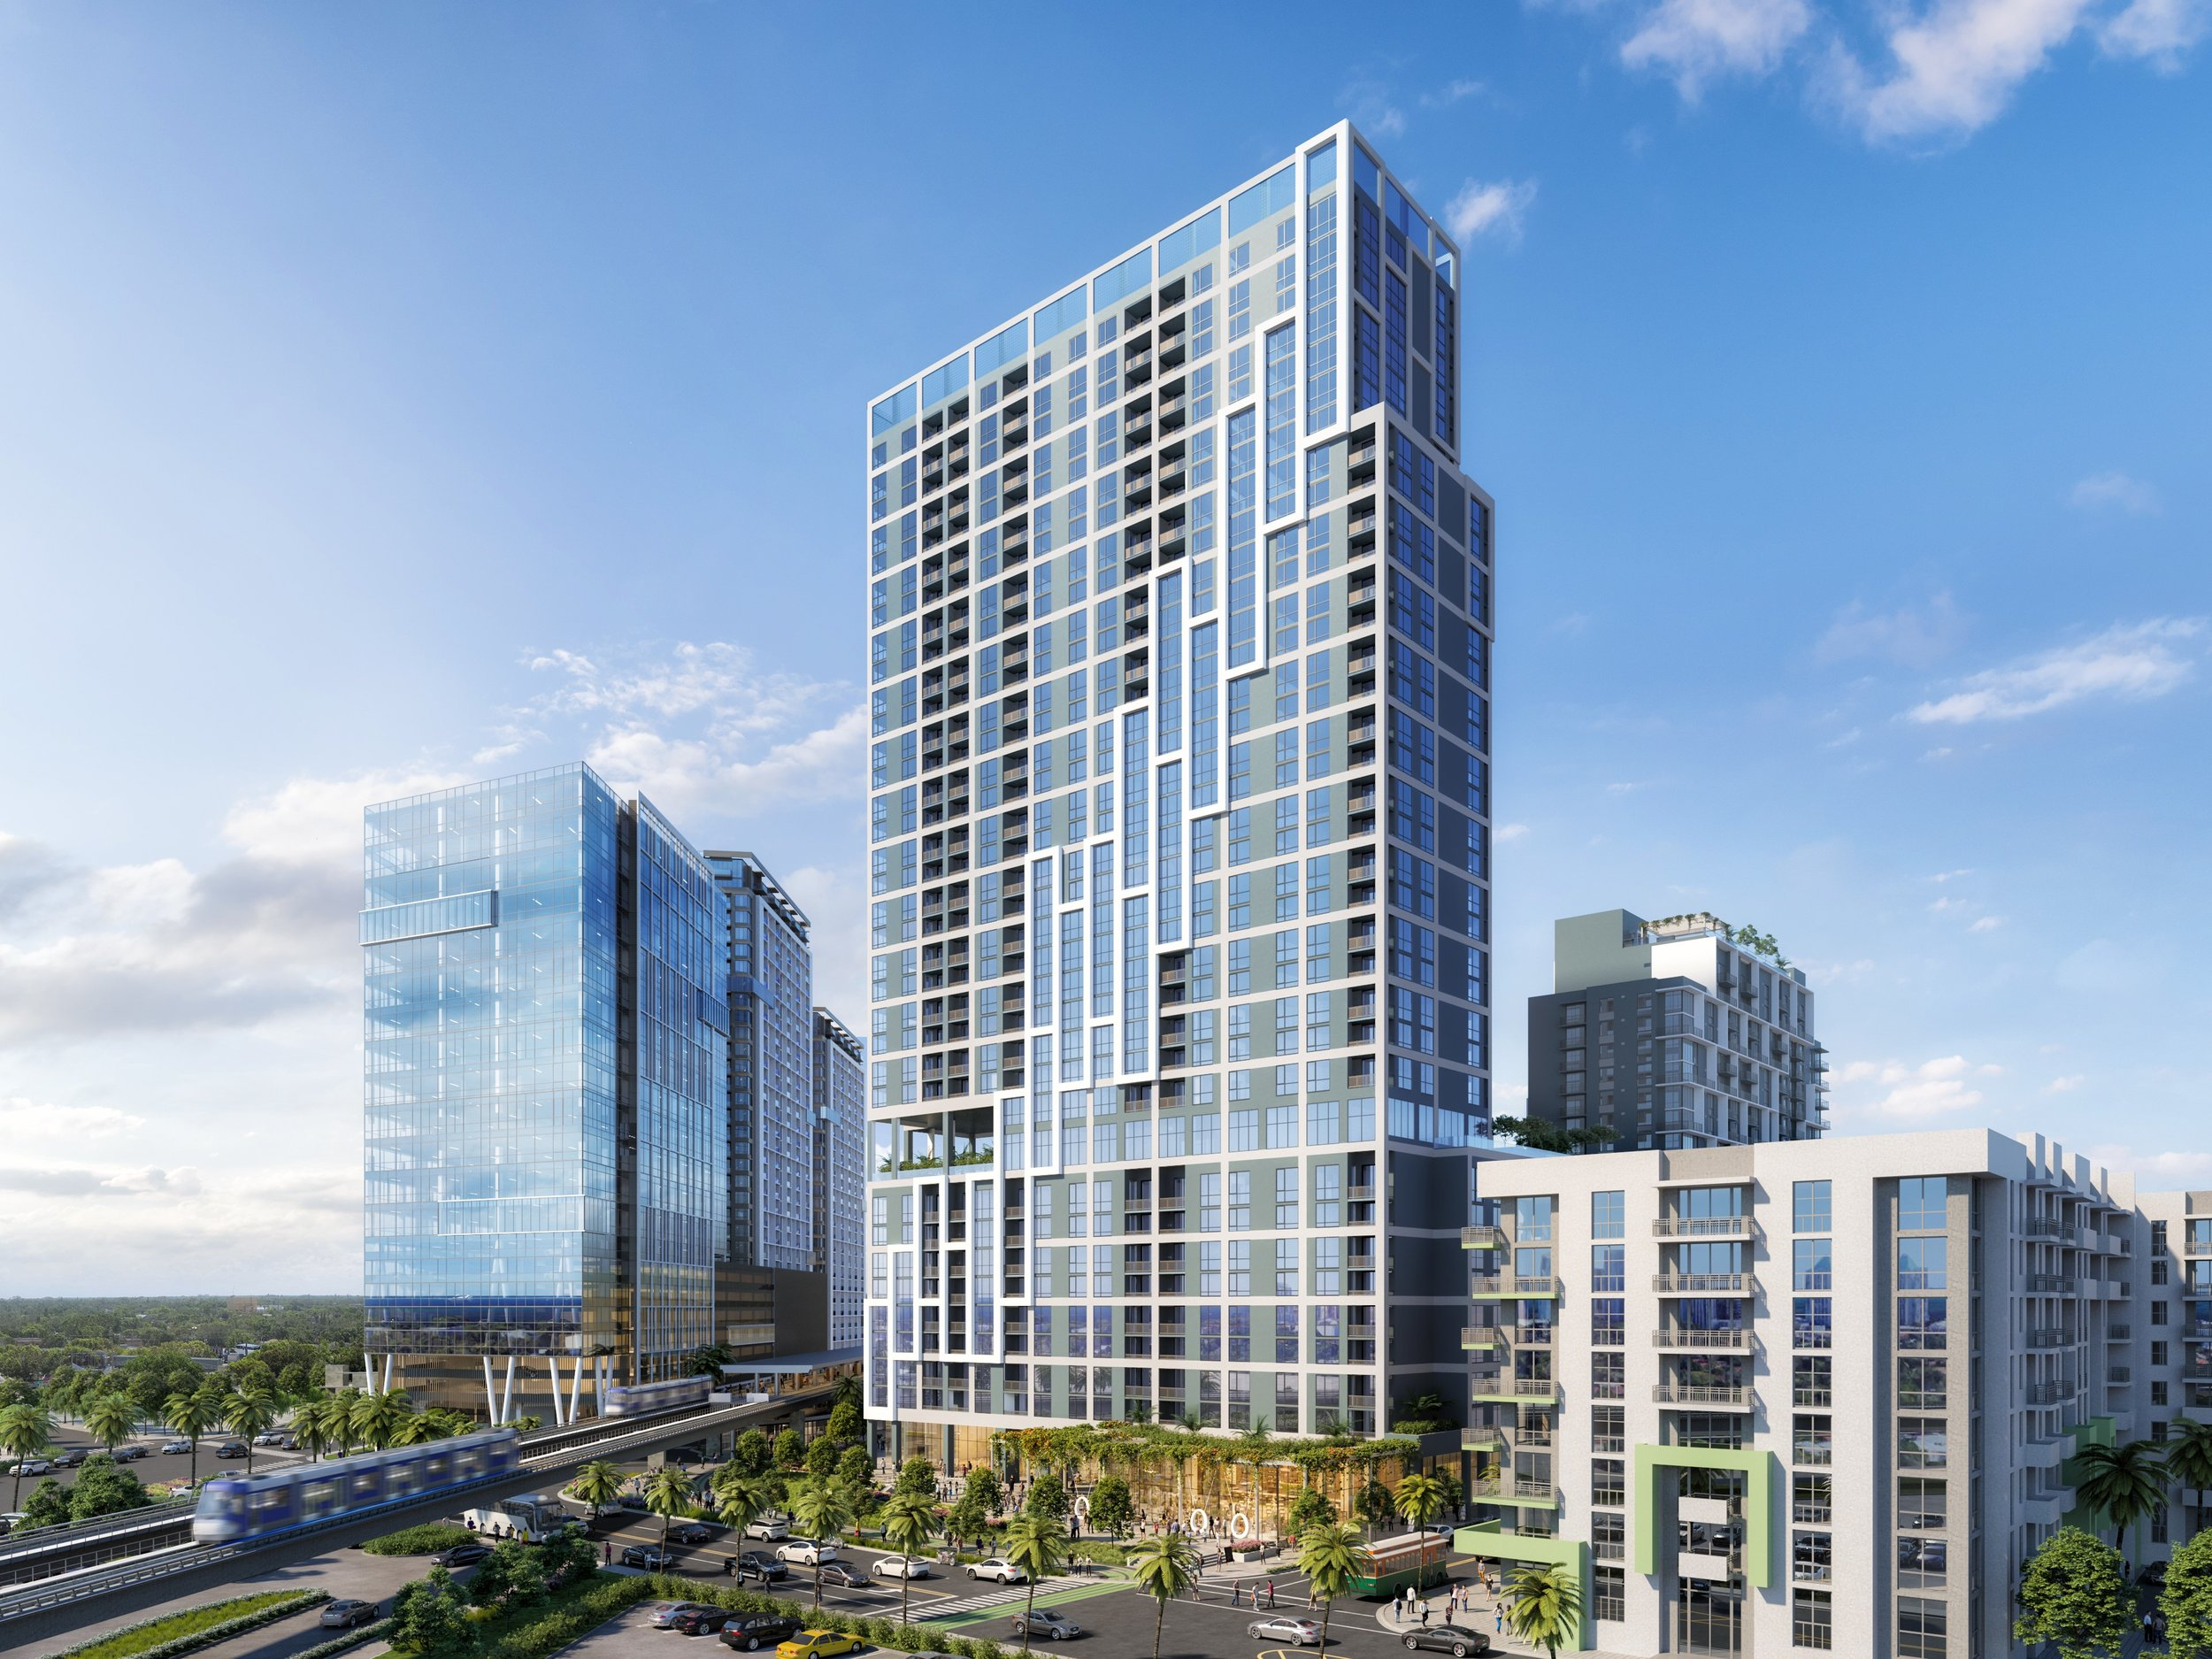 13th Floor Investments & Adler Group Break Ground On The Transit Oriented Link at Douglas